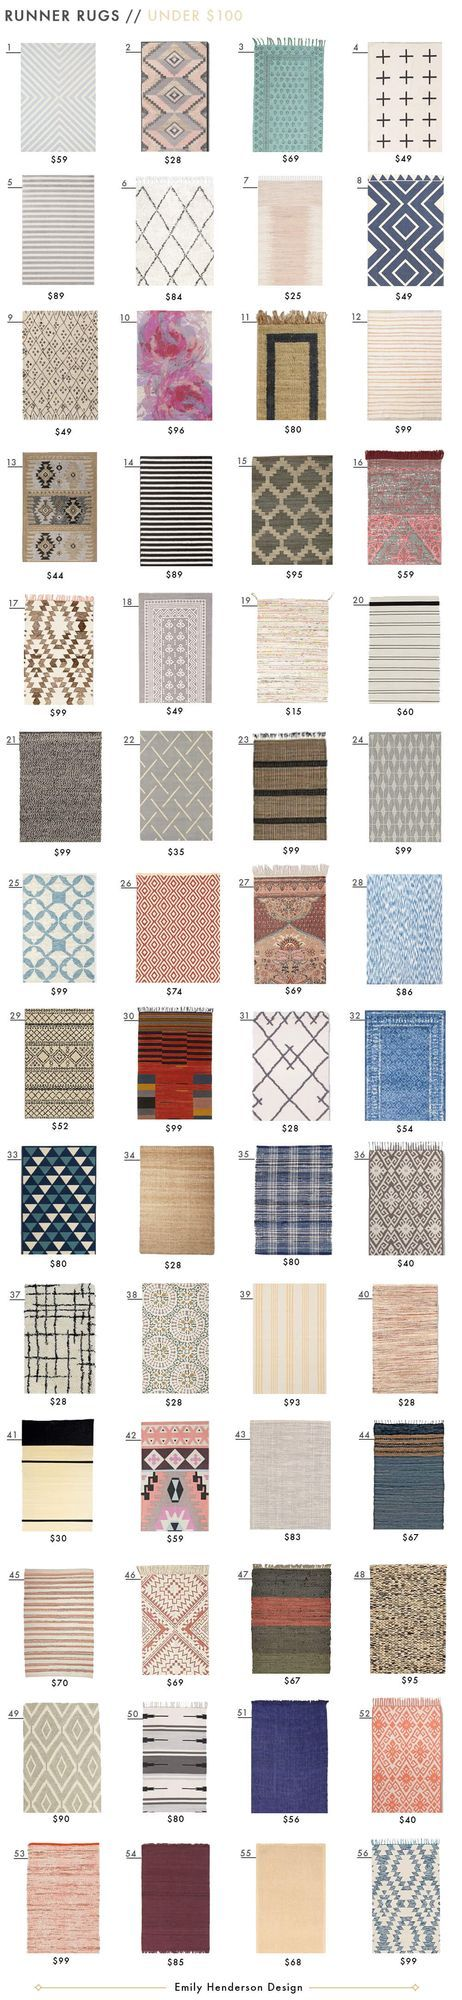 Runner Rugs Under $100 | Emily Henderson | Bloglovin'